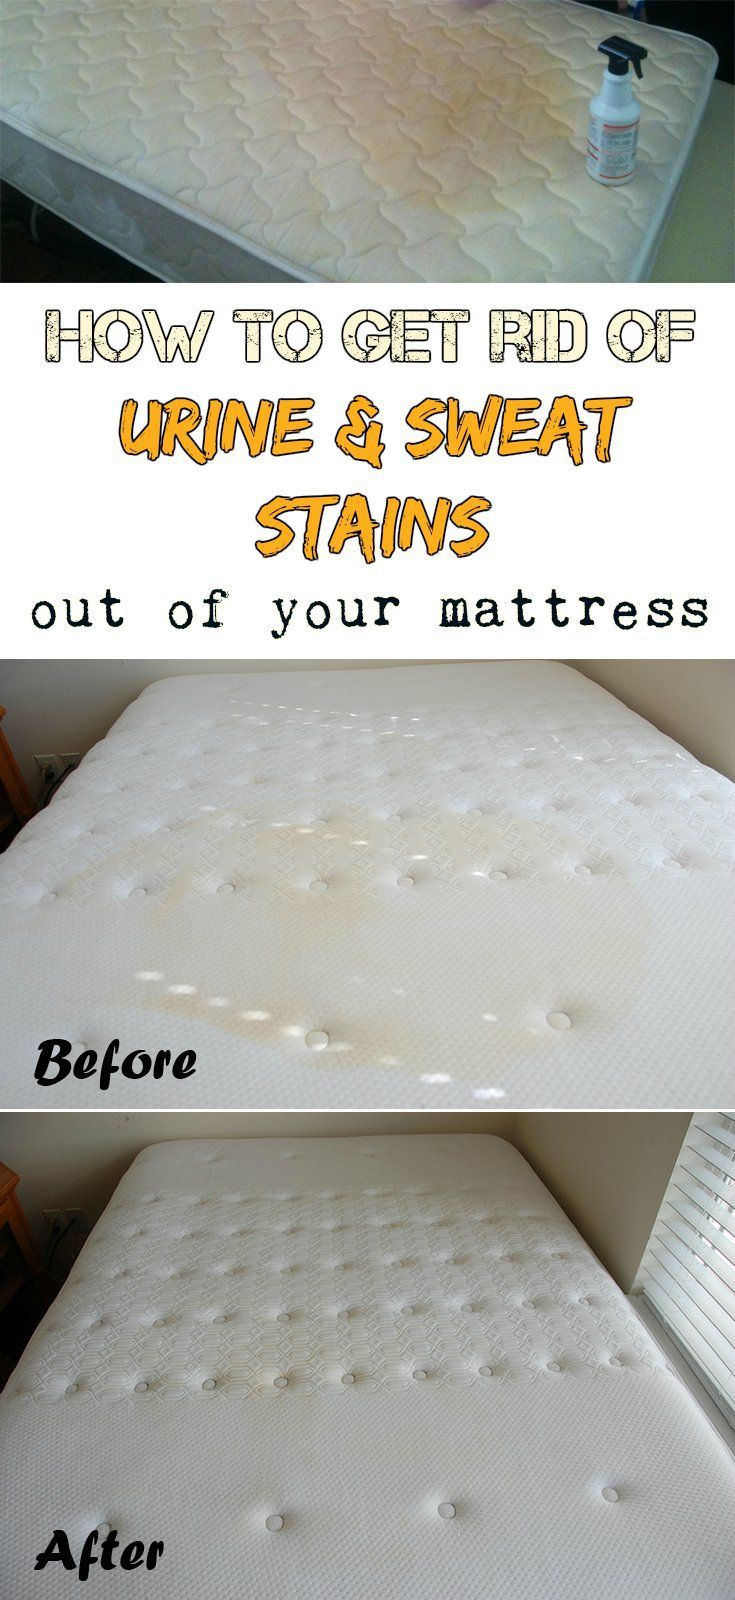 25 best ideas about the sweat on pinterest sweating blood t power and by h. Black Bedroom Furniture Sets. Home Design Ideas